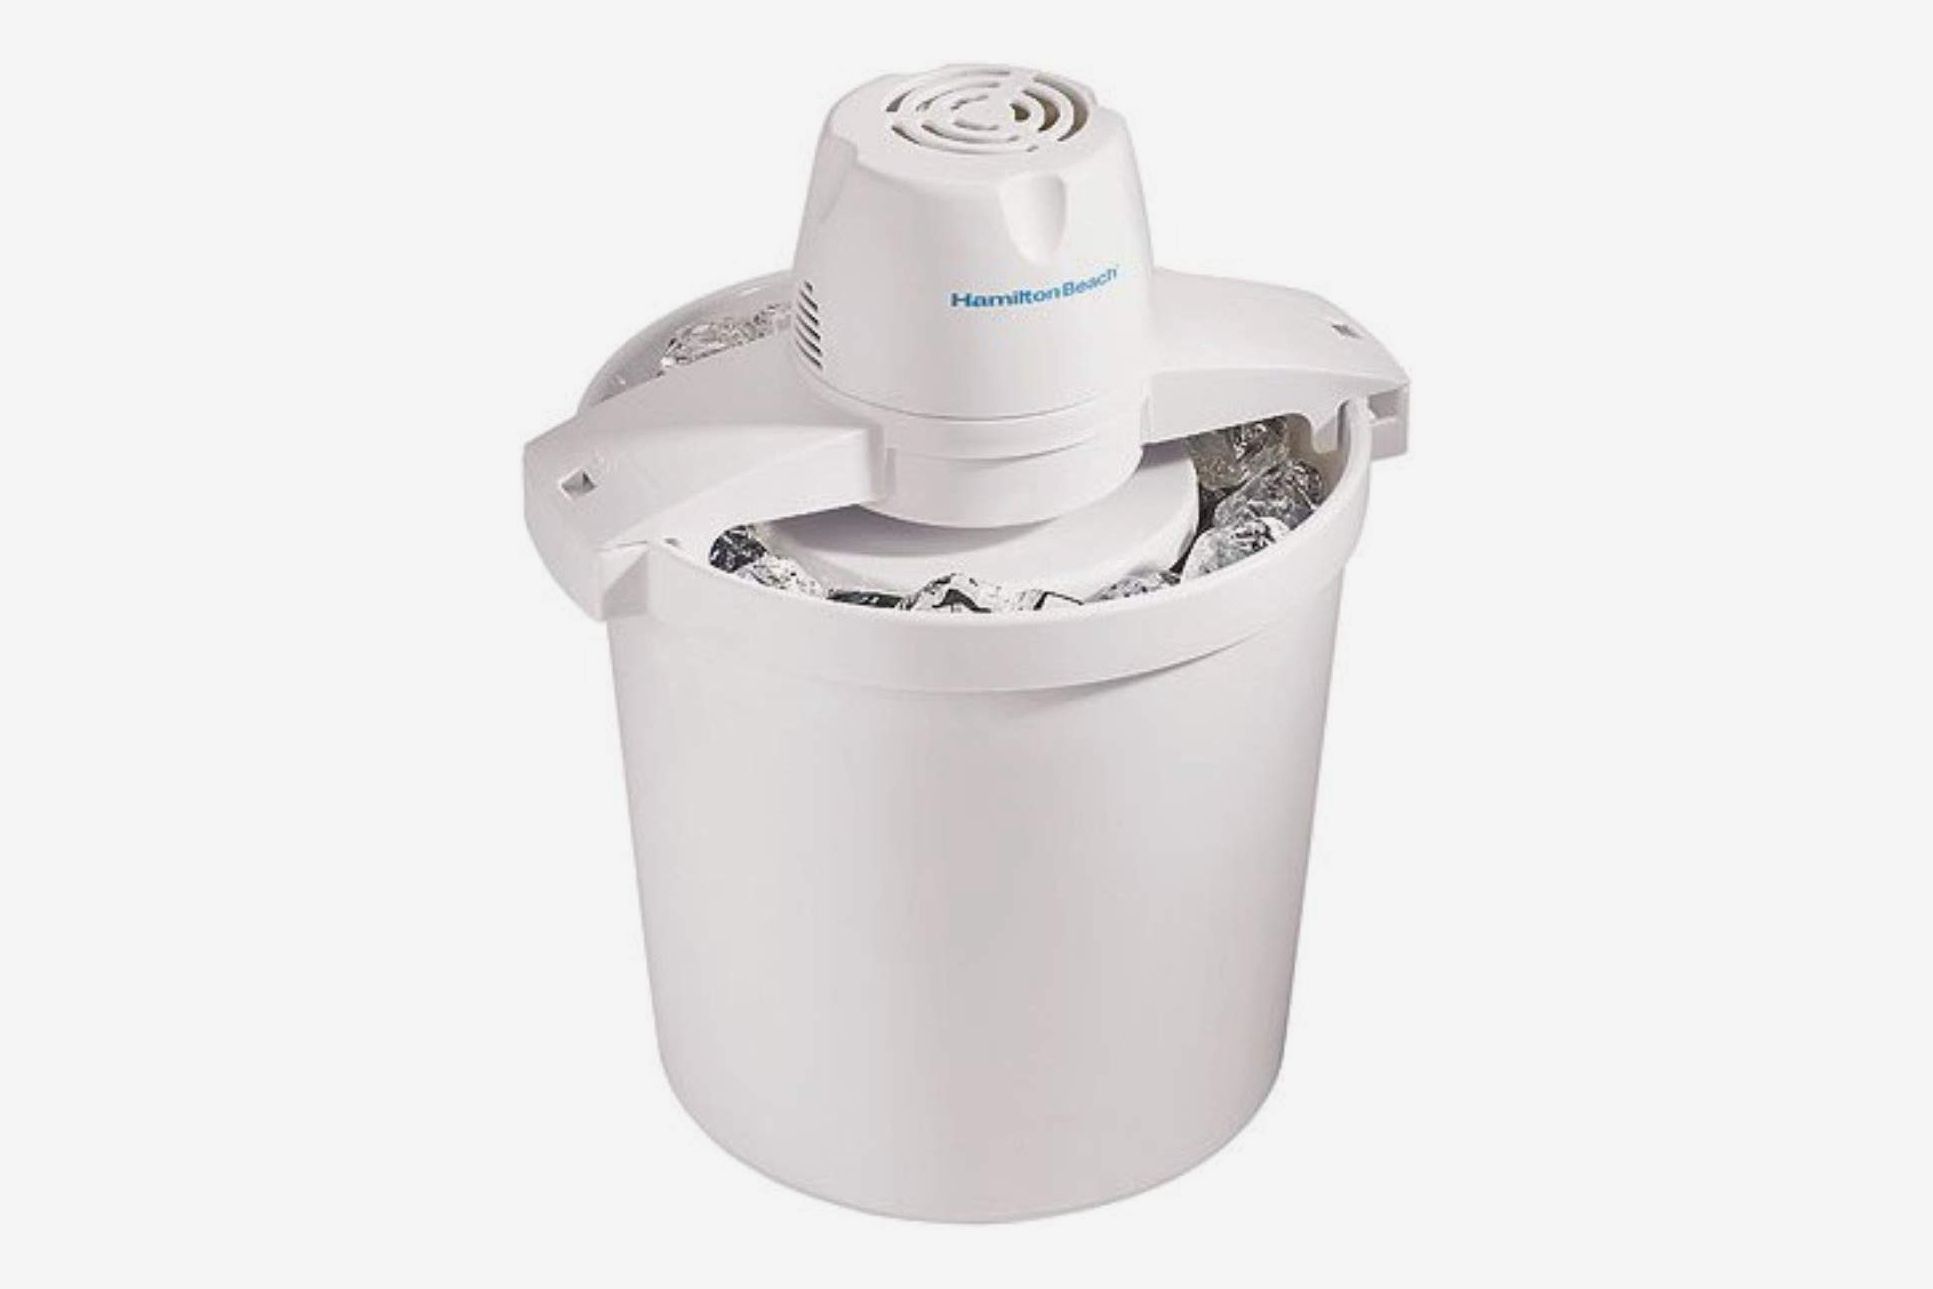 primrosely Ice Cream Maker Yogurt Makers Ice Cream Maker Machine With Built In Freezer Roll Ice Cream Maker Ice Cream Pan Round Instant Ice Cream Maker With 2 Spatulas For Children